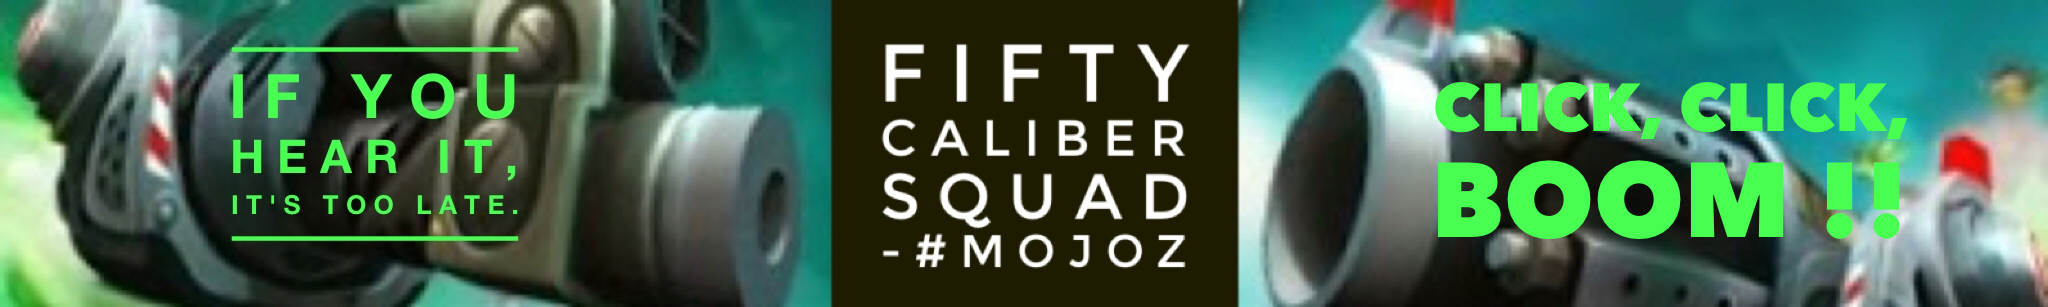 Fifty cal squad banner 2.png